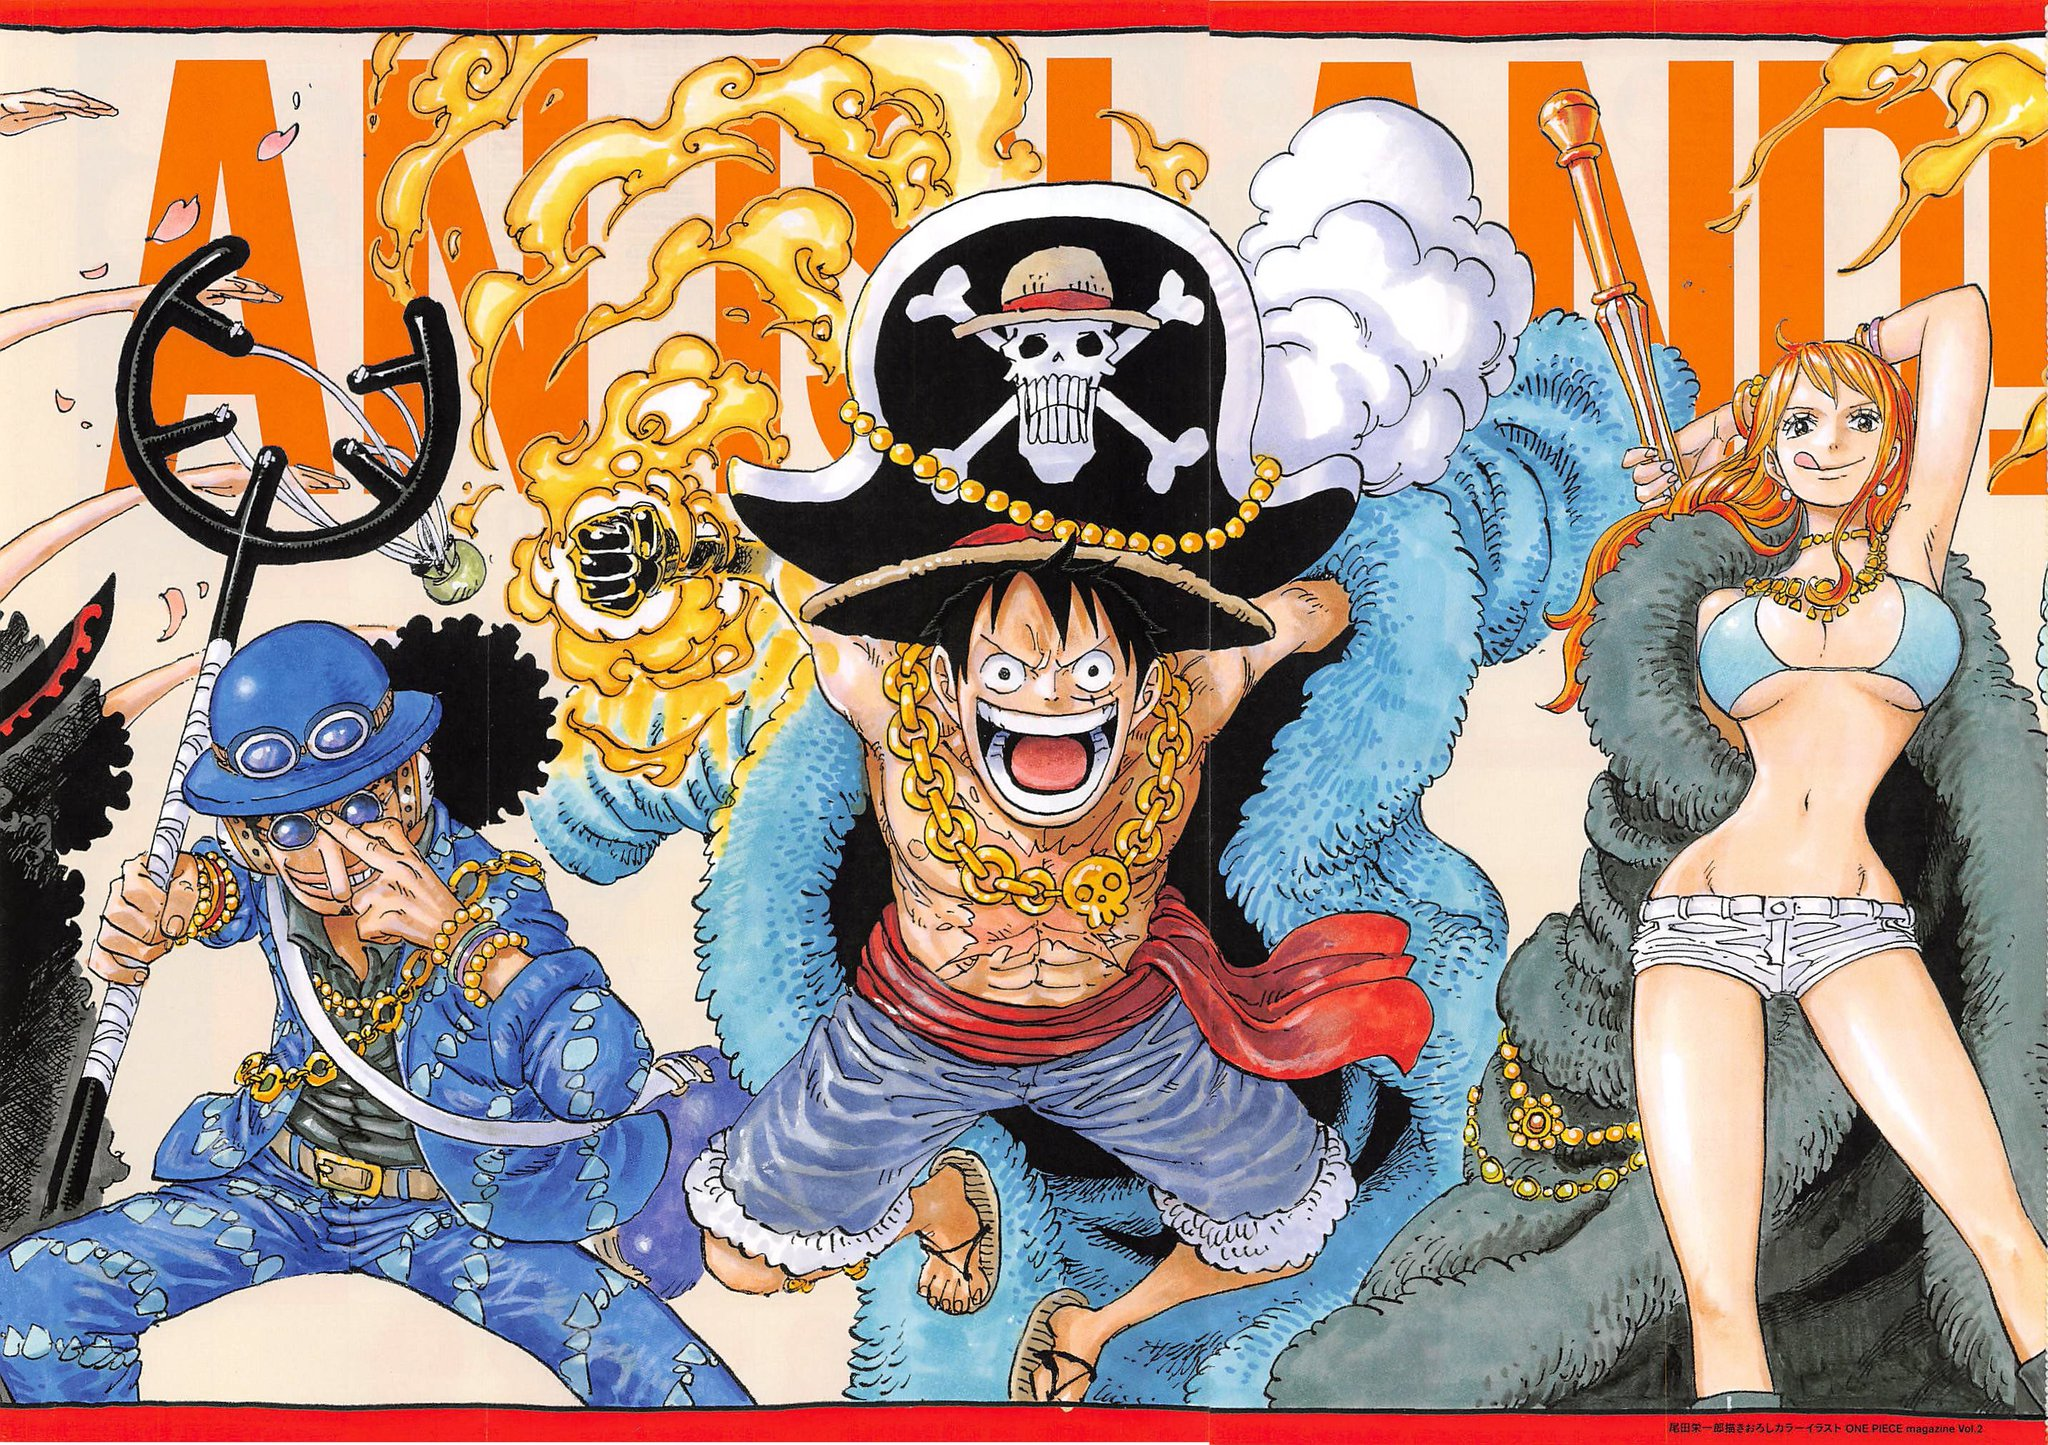 Napoleon like Straw Hat reference in Magazine Colorspread    OnePiece Napoleon like Straw Hat reference in Magazine Colorspread